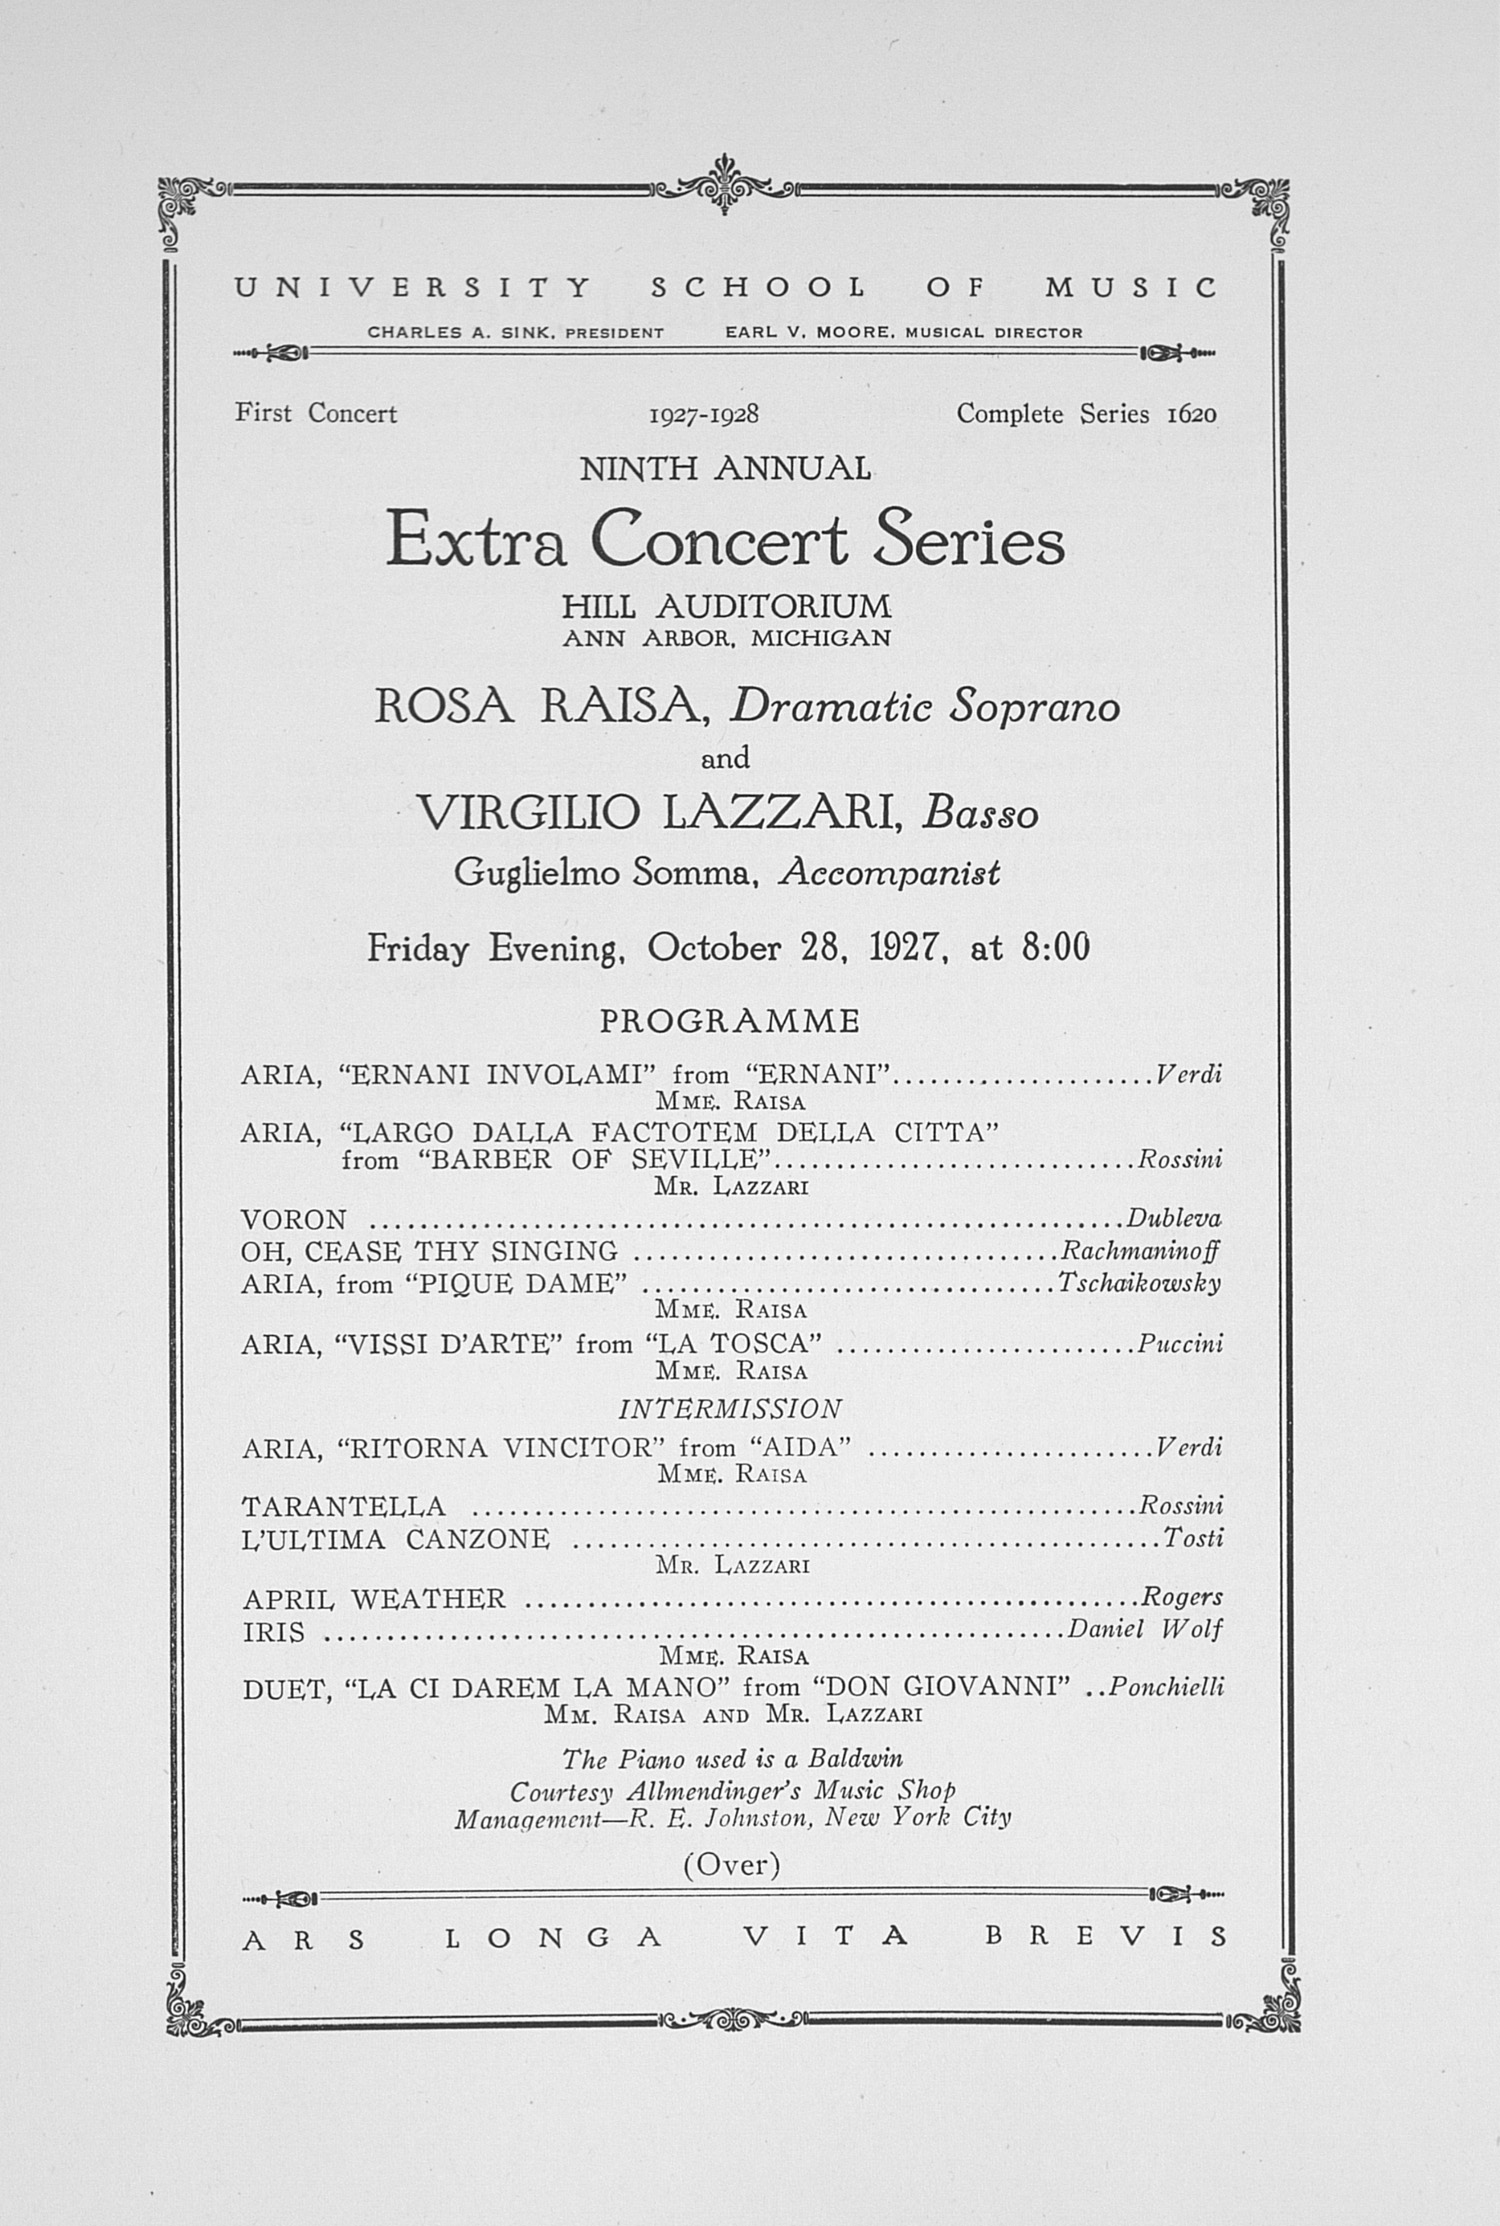 UMS Concert Program, October 28, 1927: Ninth Annual Extra Concert Series -- Rosa Raisa image